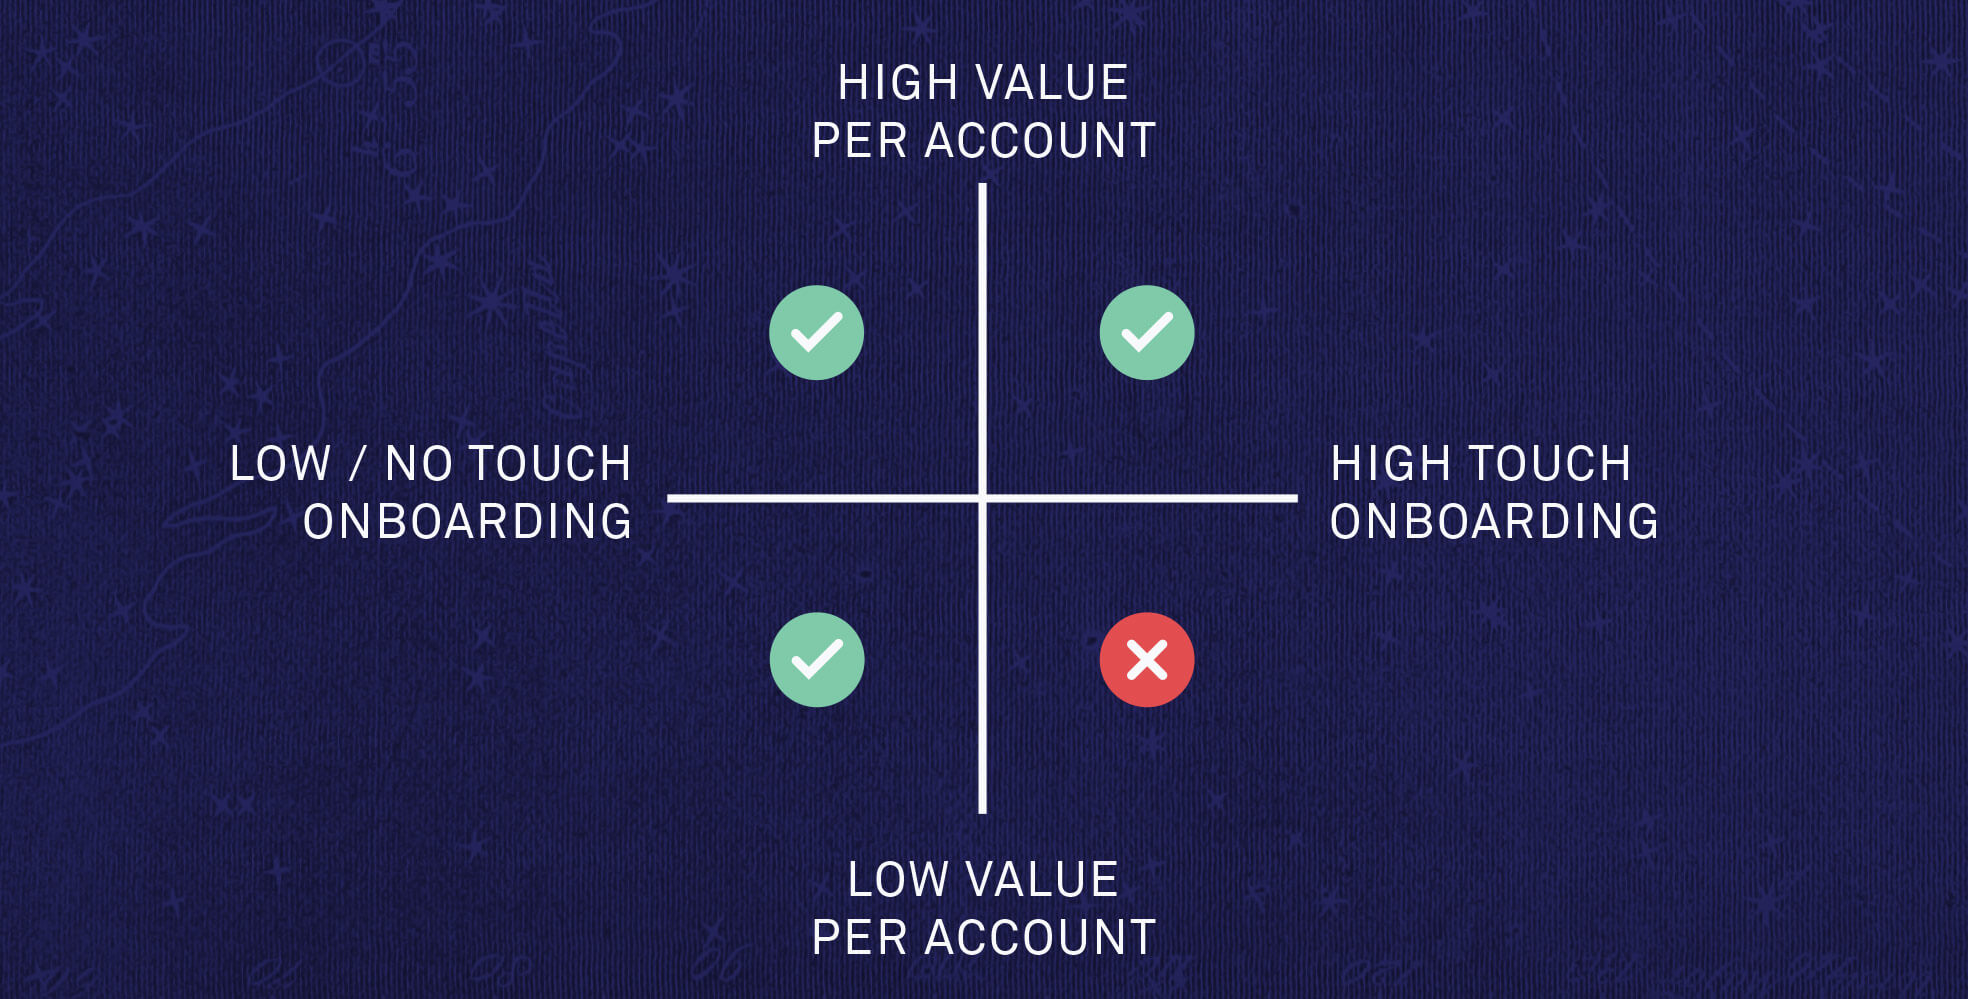 The low value per account and high touch onboarding quadrant is not a good place to be